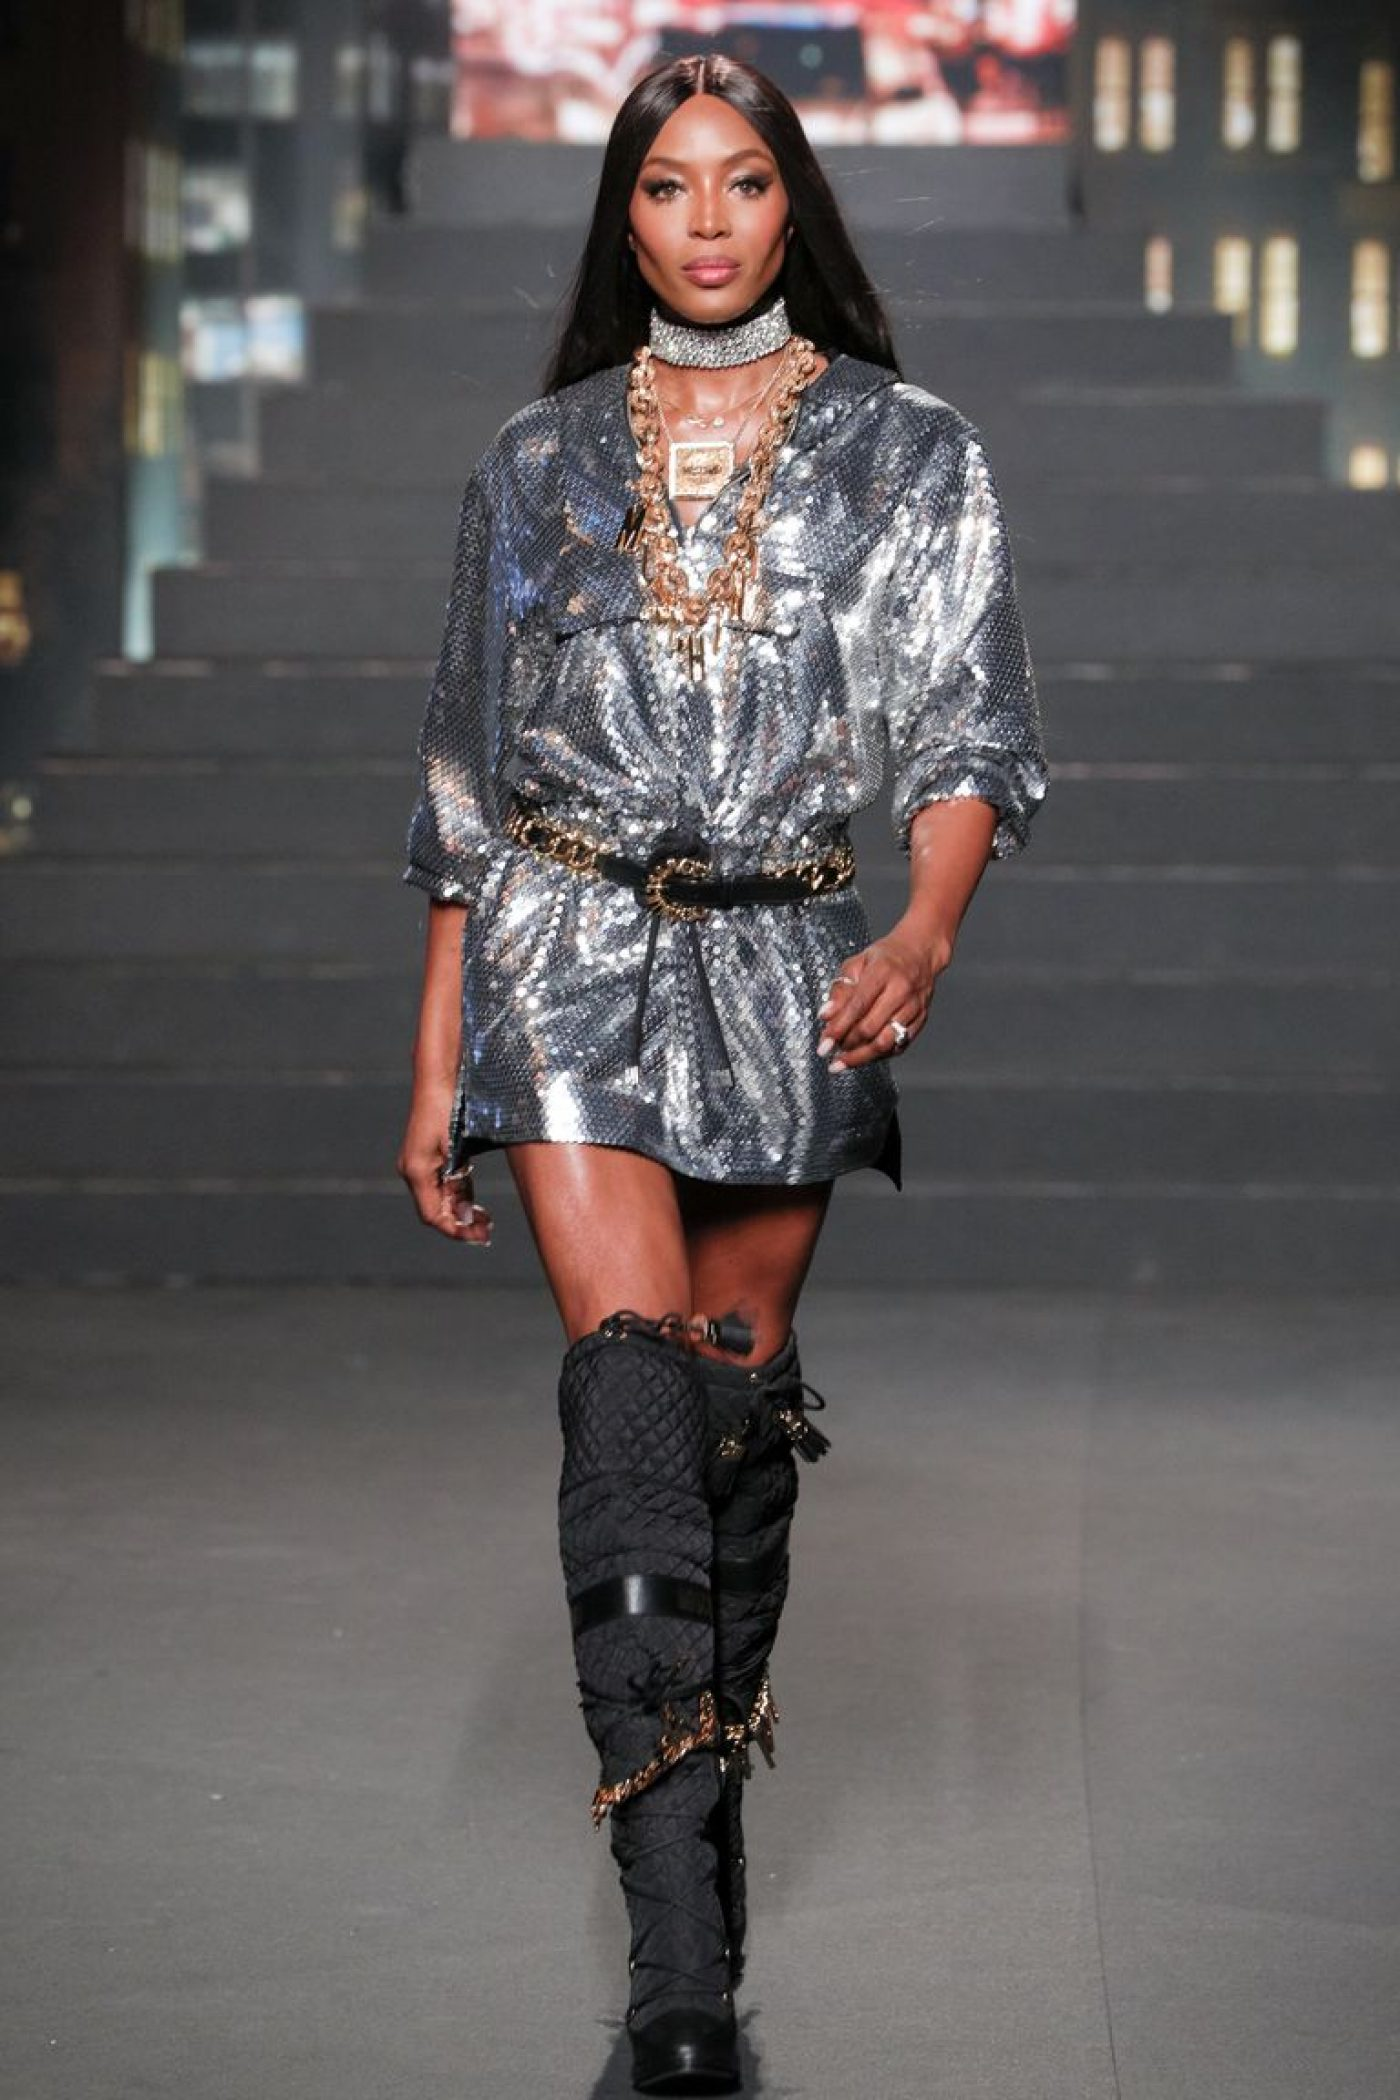 Naomi-Campbell-Hm-Moschino-Collaboration-Show